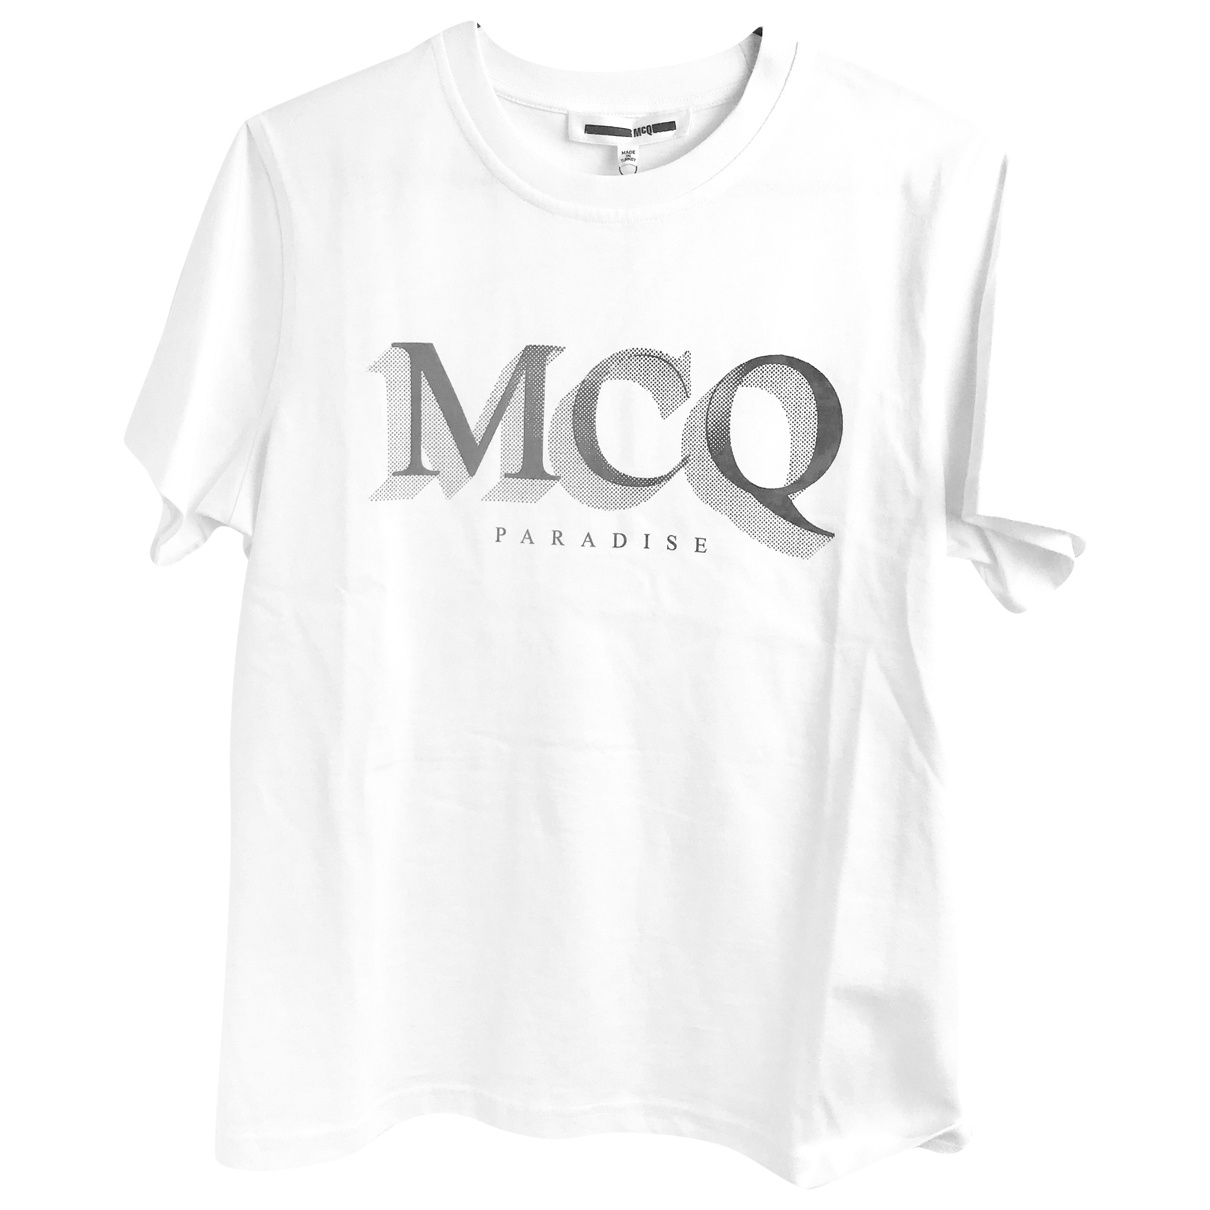 Mcq \N White Cotton  top for Women S International